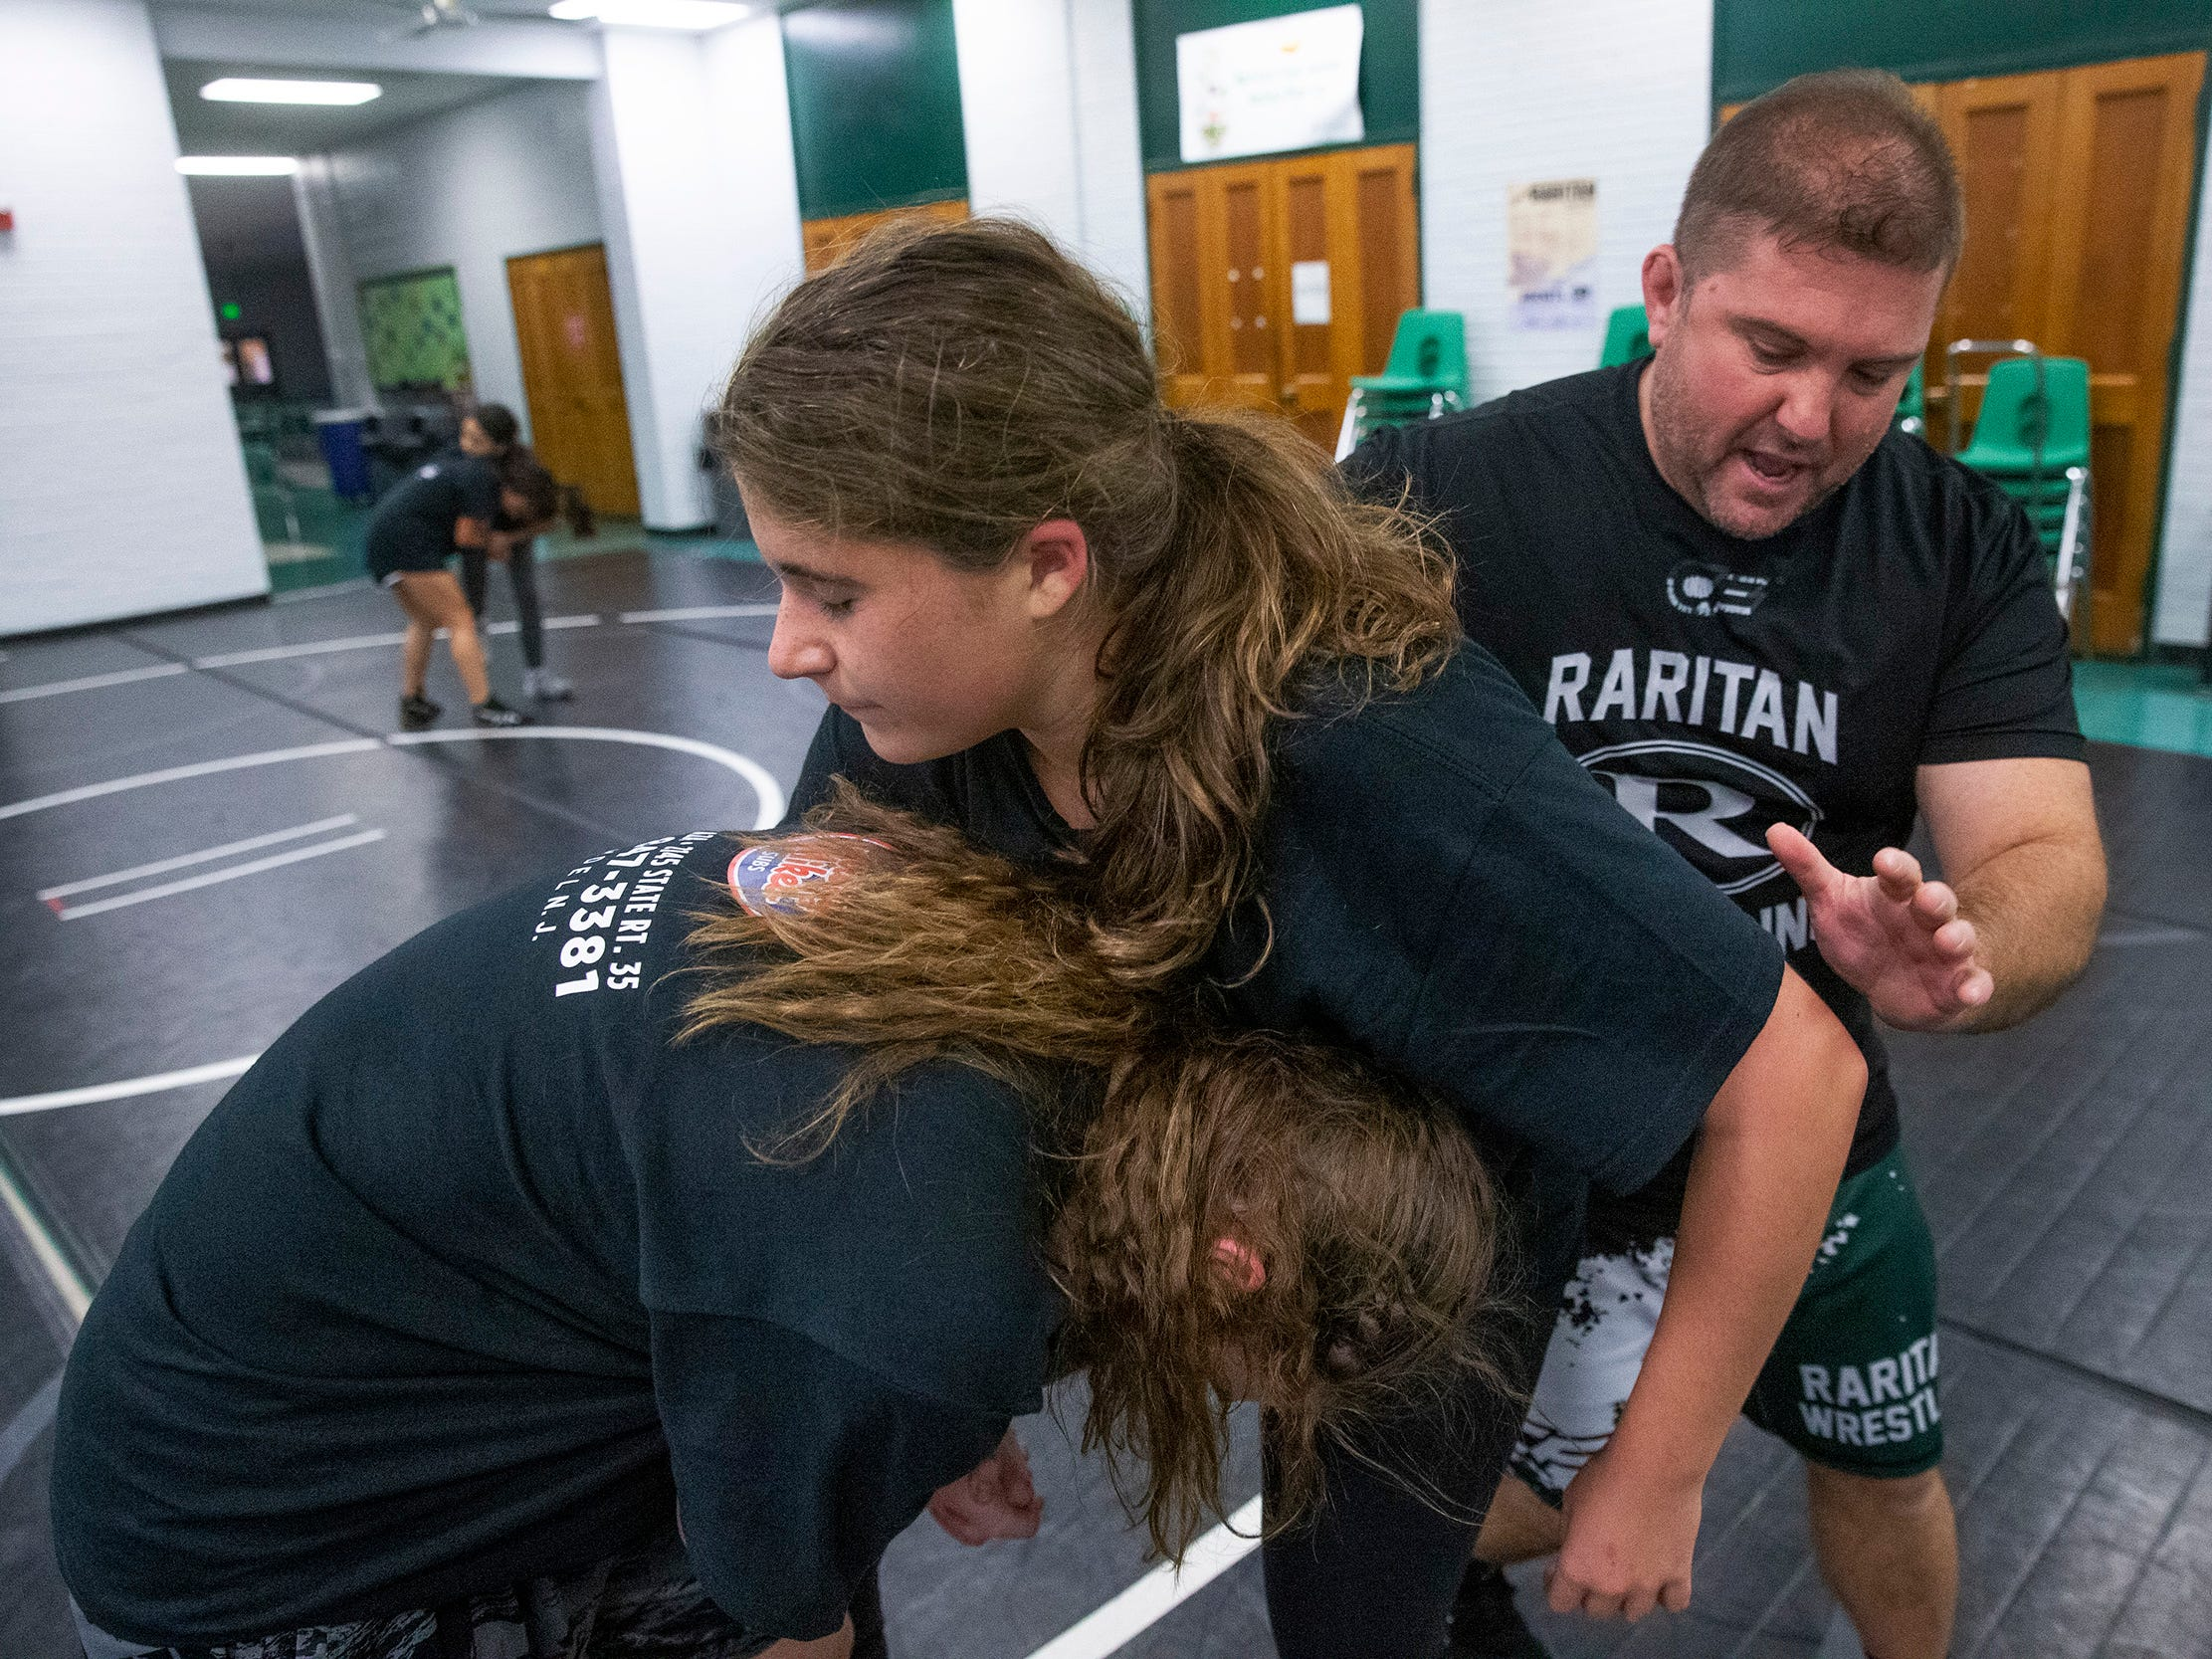 Coach Robert Nucci works with Victoria Hurt and Brook Gaetani on takedown moves. NJSIAA is offering wrestling for girls this year and they will participate in an all girls tournament at the end of the season. Raritan High School Wrestling is fielding nearly a  full girls team this year. While girls mostly practice separately from the boys, they are in a room next to the boys and frequent coaching sessions happen in the boys room to teach moves.